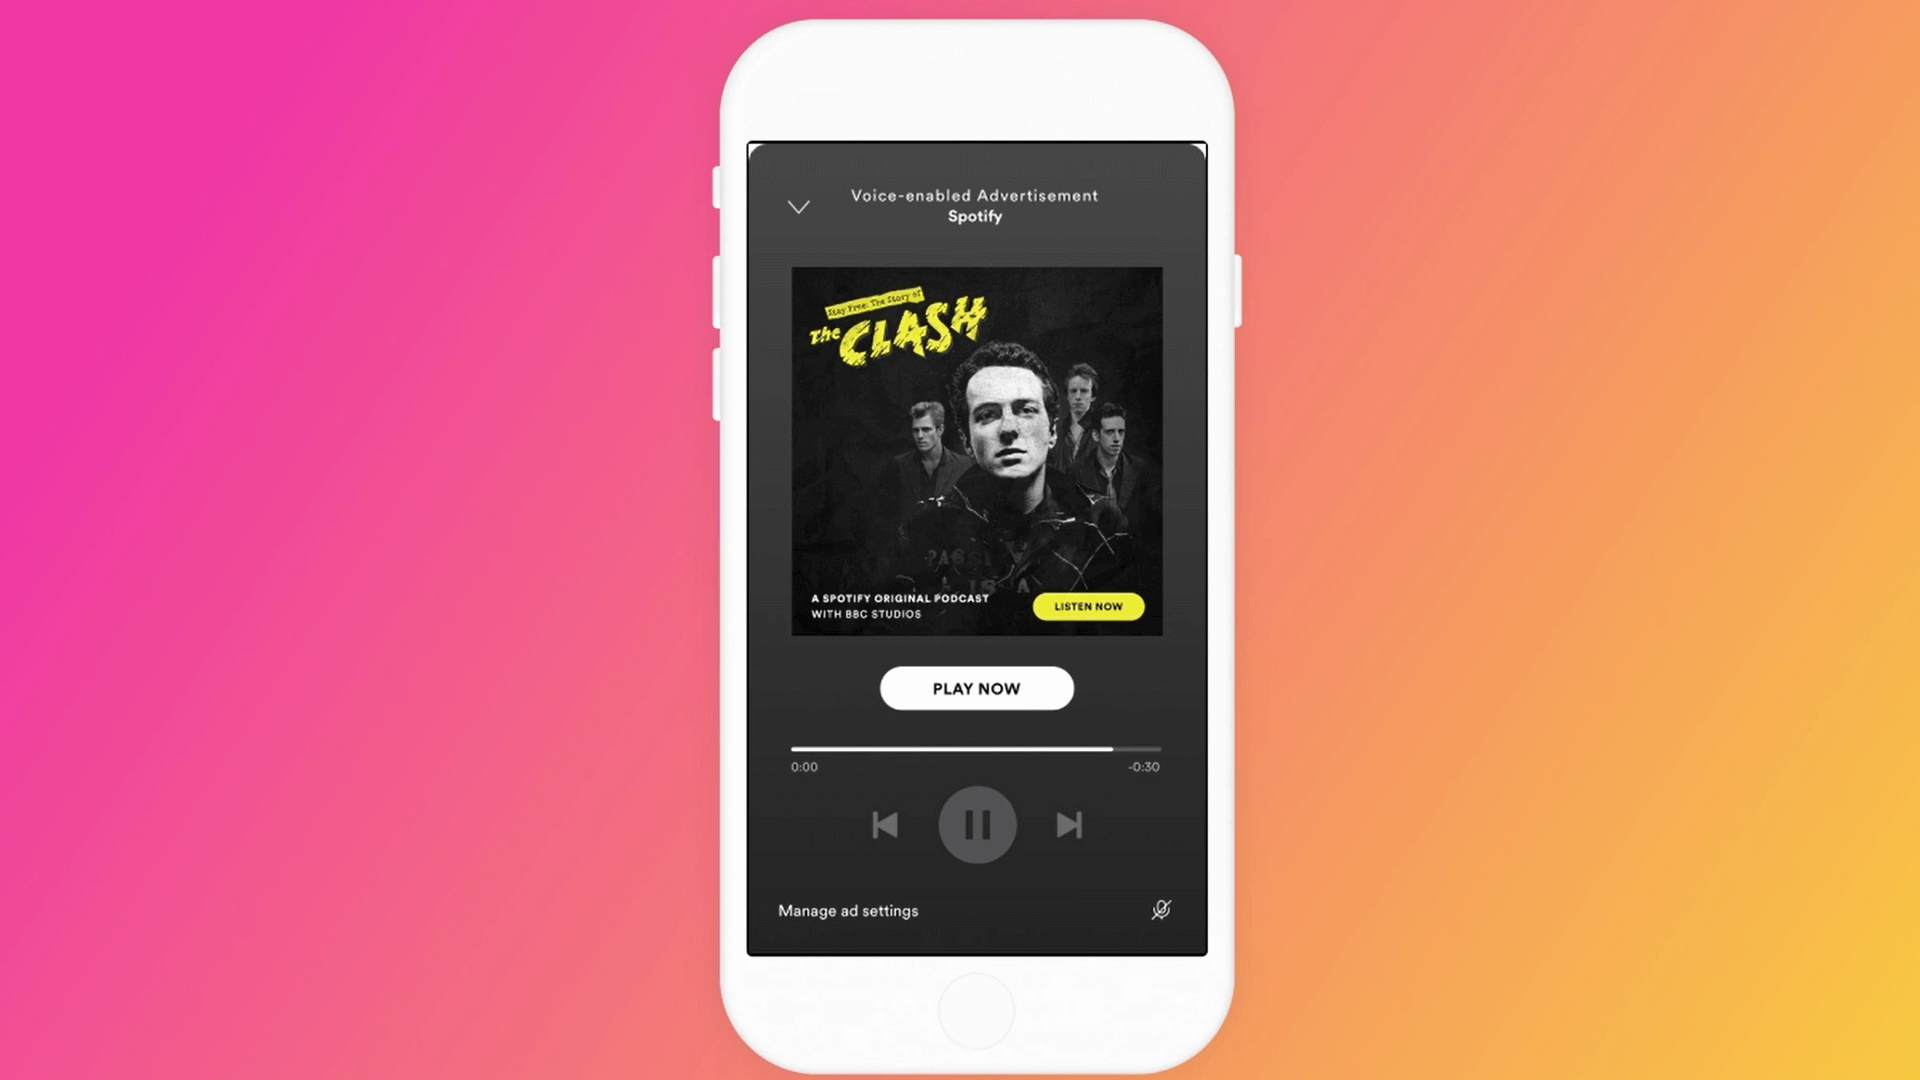 Spotify is testing voice-enabled ads that let listeners command engagement | DeviceDaily.com